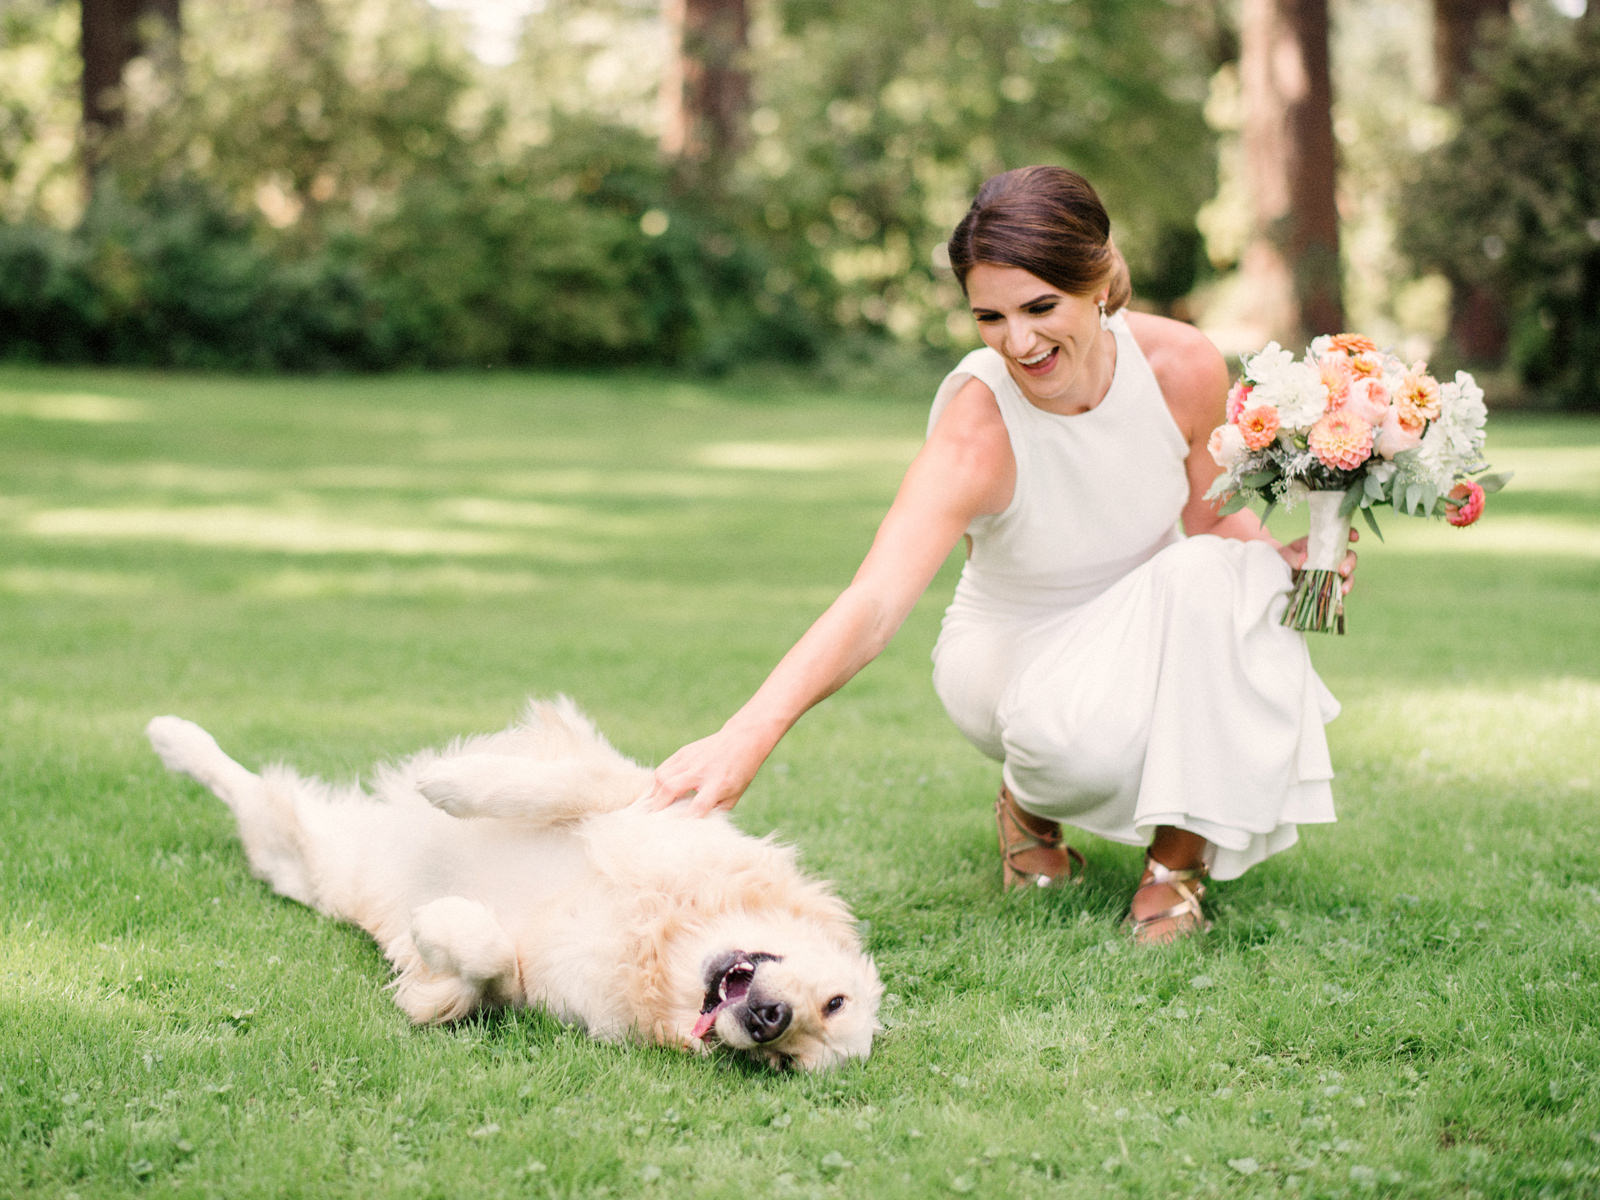 159-bride-and-her-golden-retreiver-in-a-sarah-seven-dress-at-lakewold-gardens.jpg